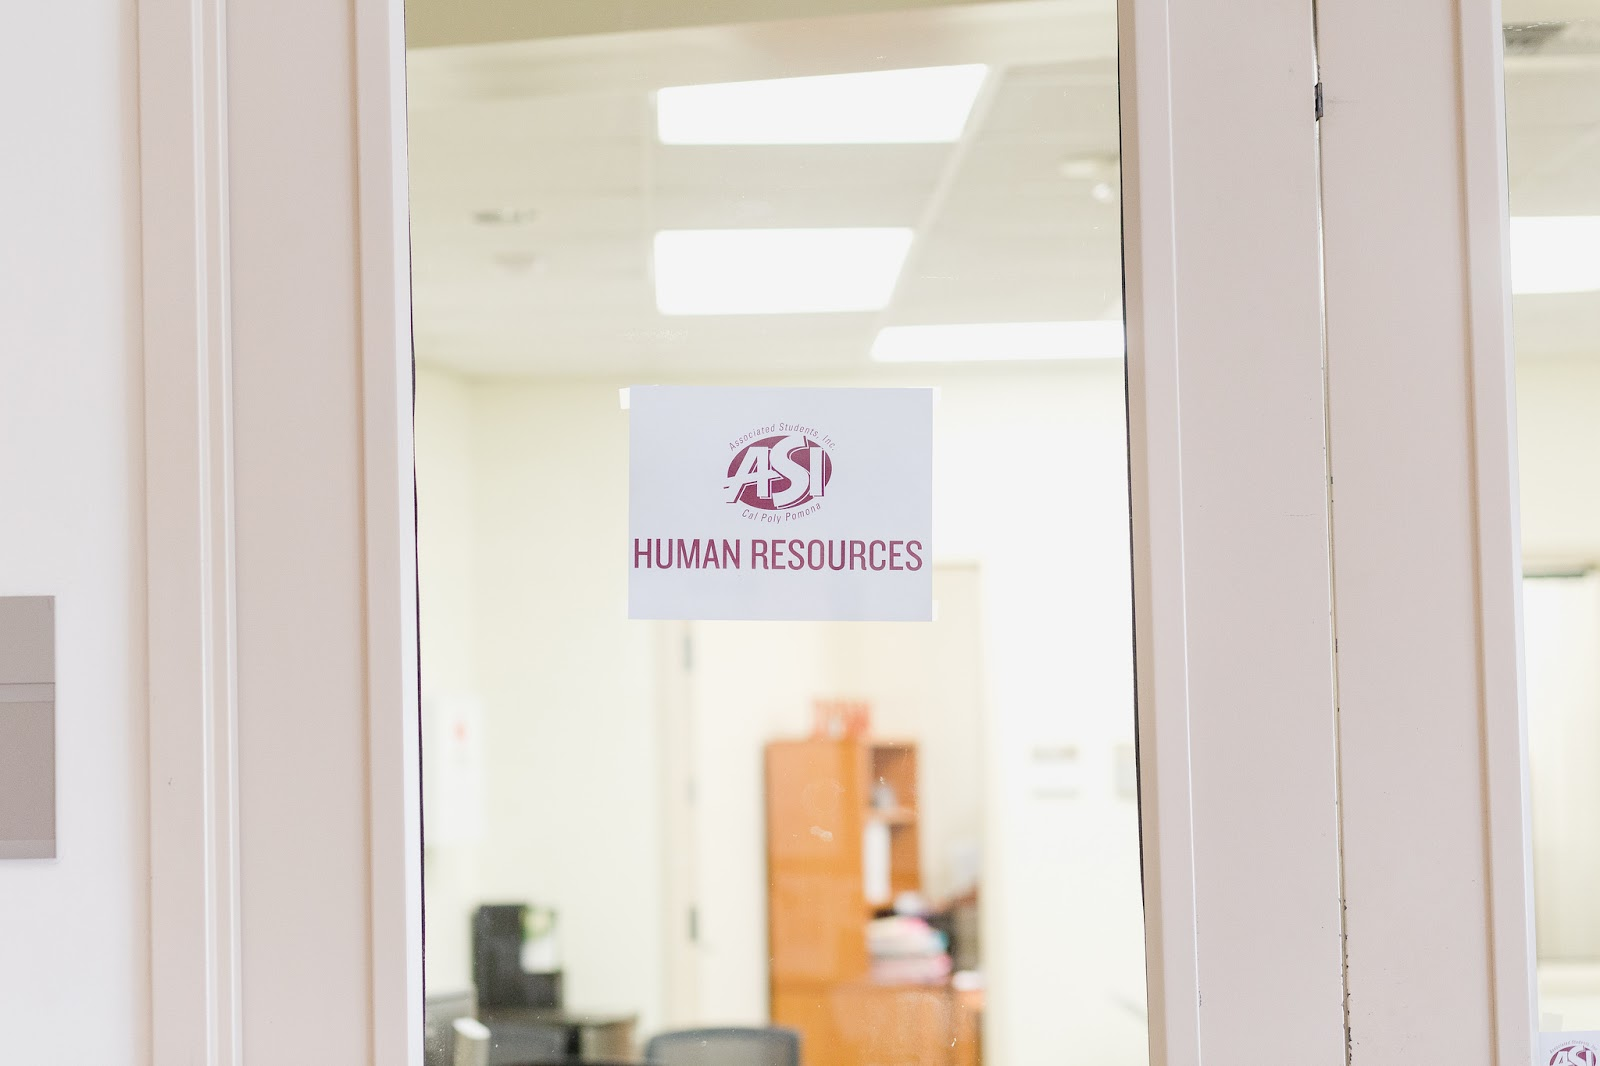 Human resources sign on door